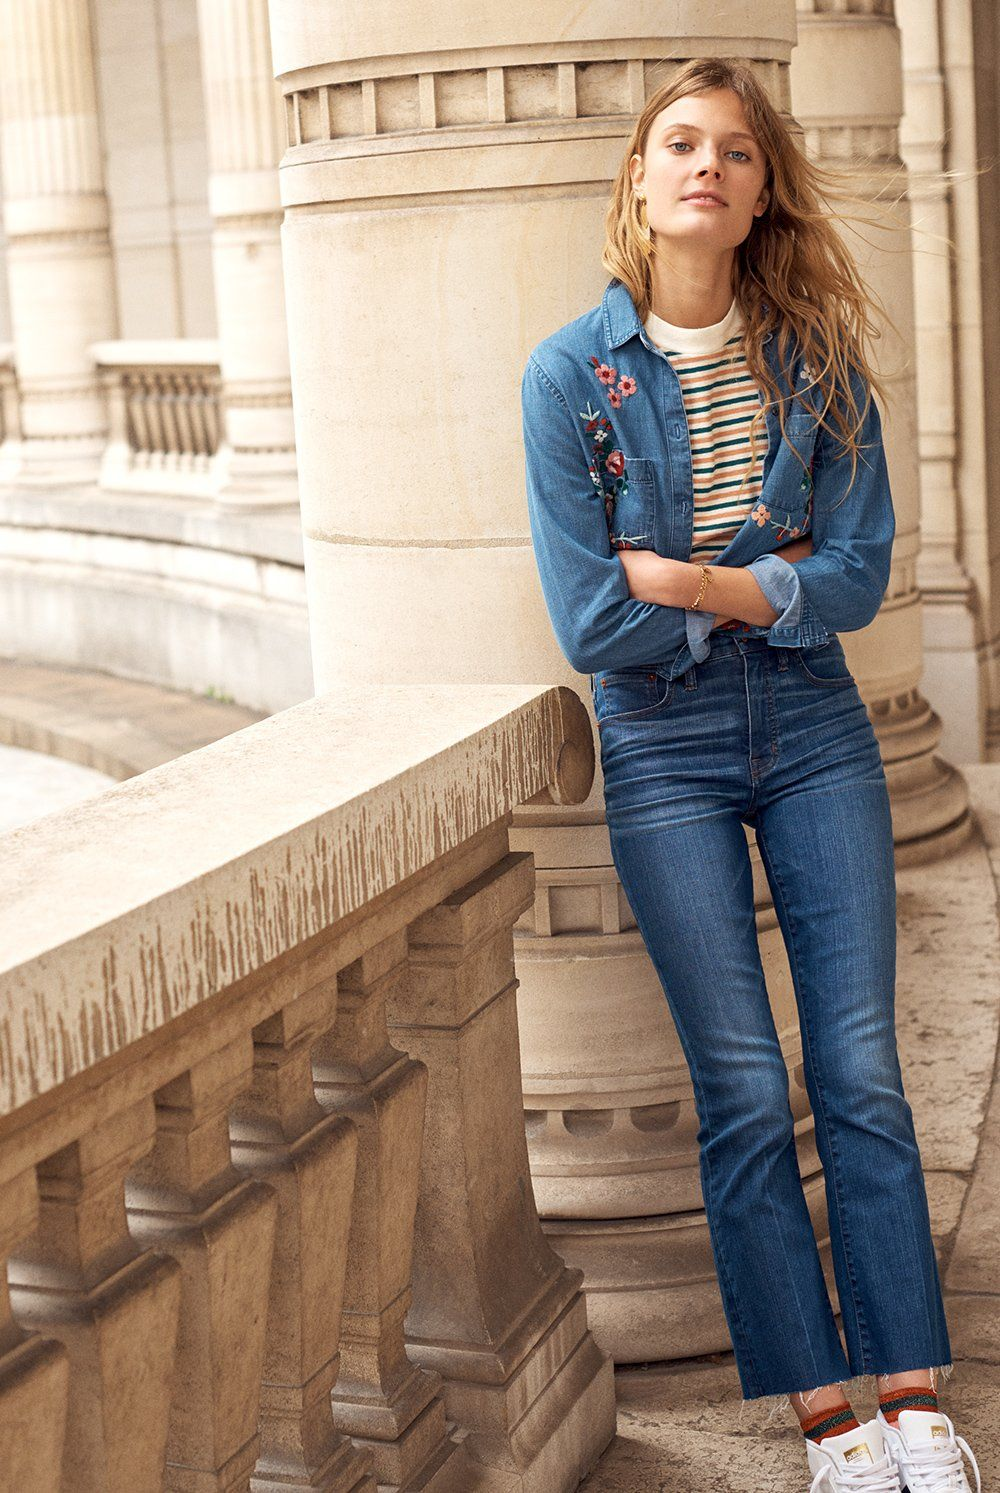 1c4111bc29 madewell cali demi-boot jeans worn with the embroidered cutoff denim shirt  + retro tee.